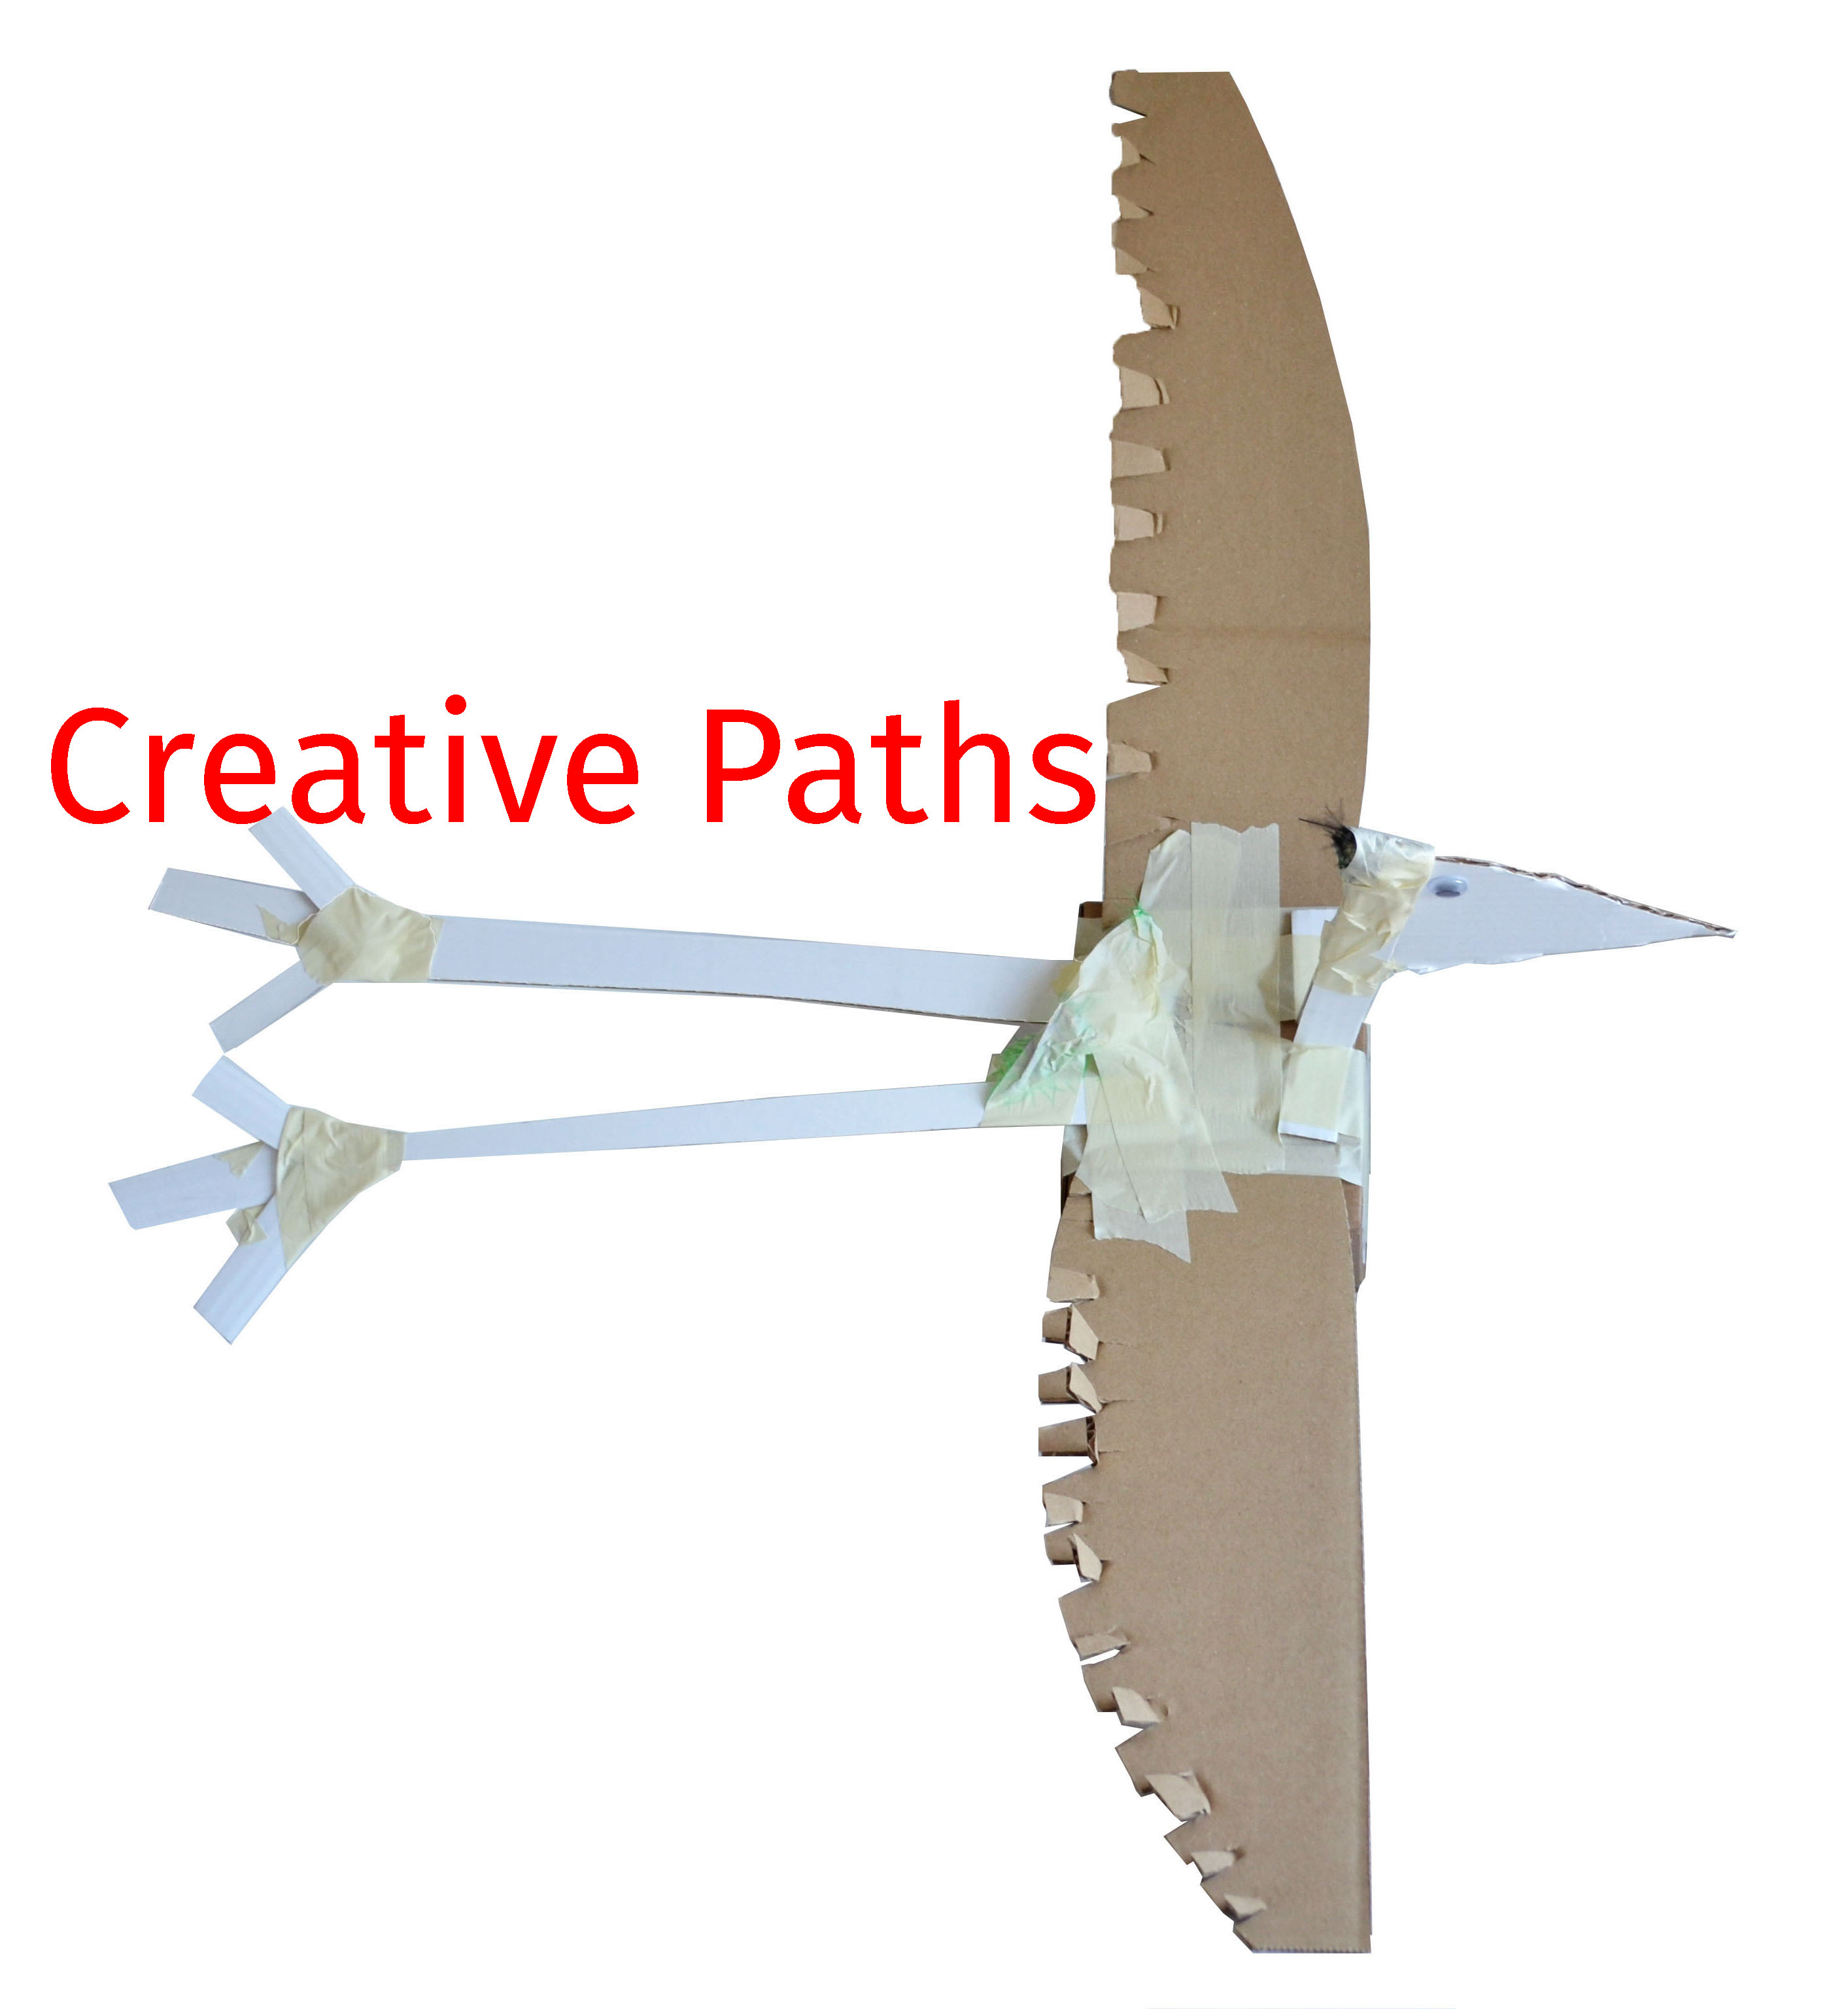 'Creative Paths' bringing arts to your group